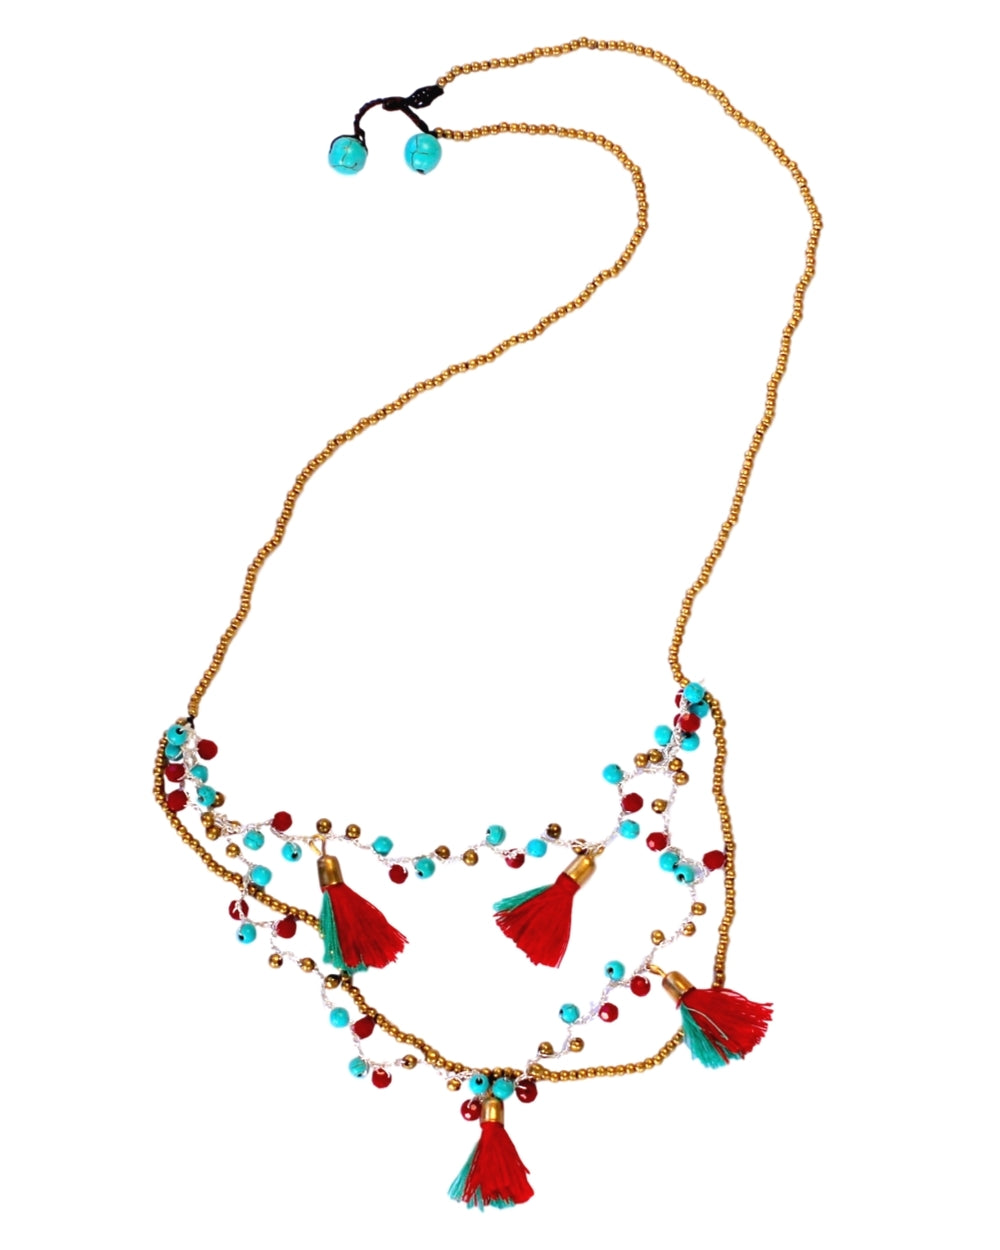 Turquoise Red Tassels and Beads Necklace